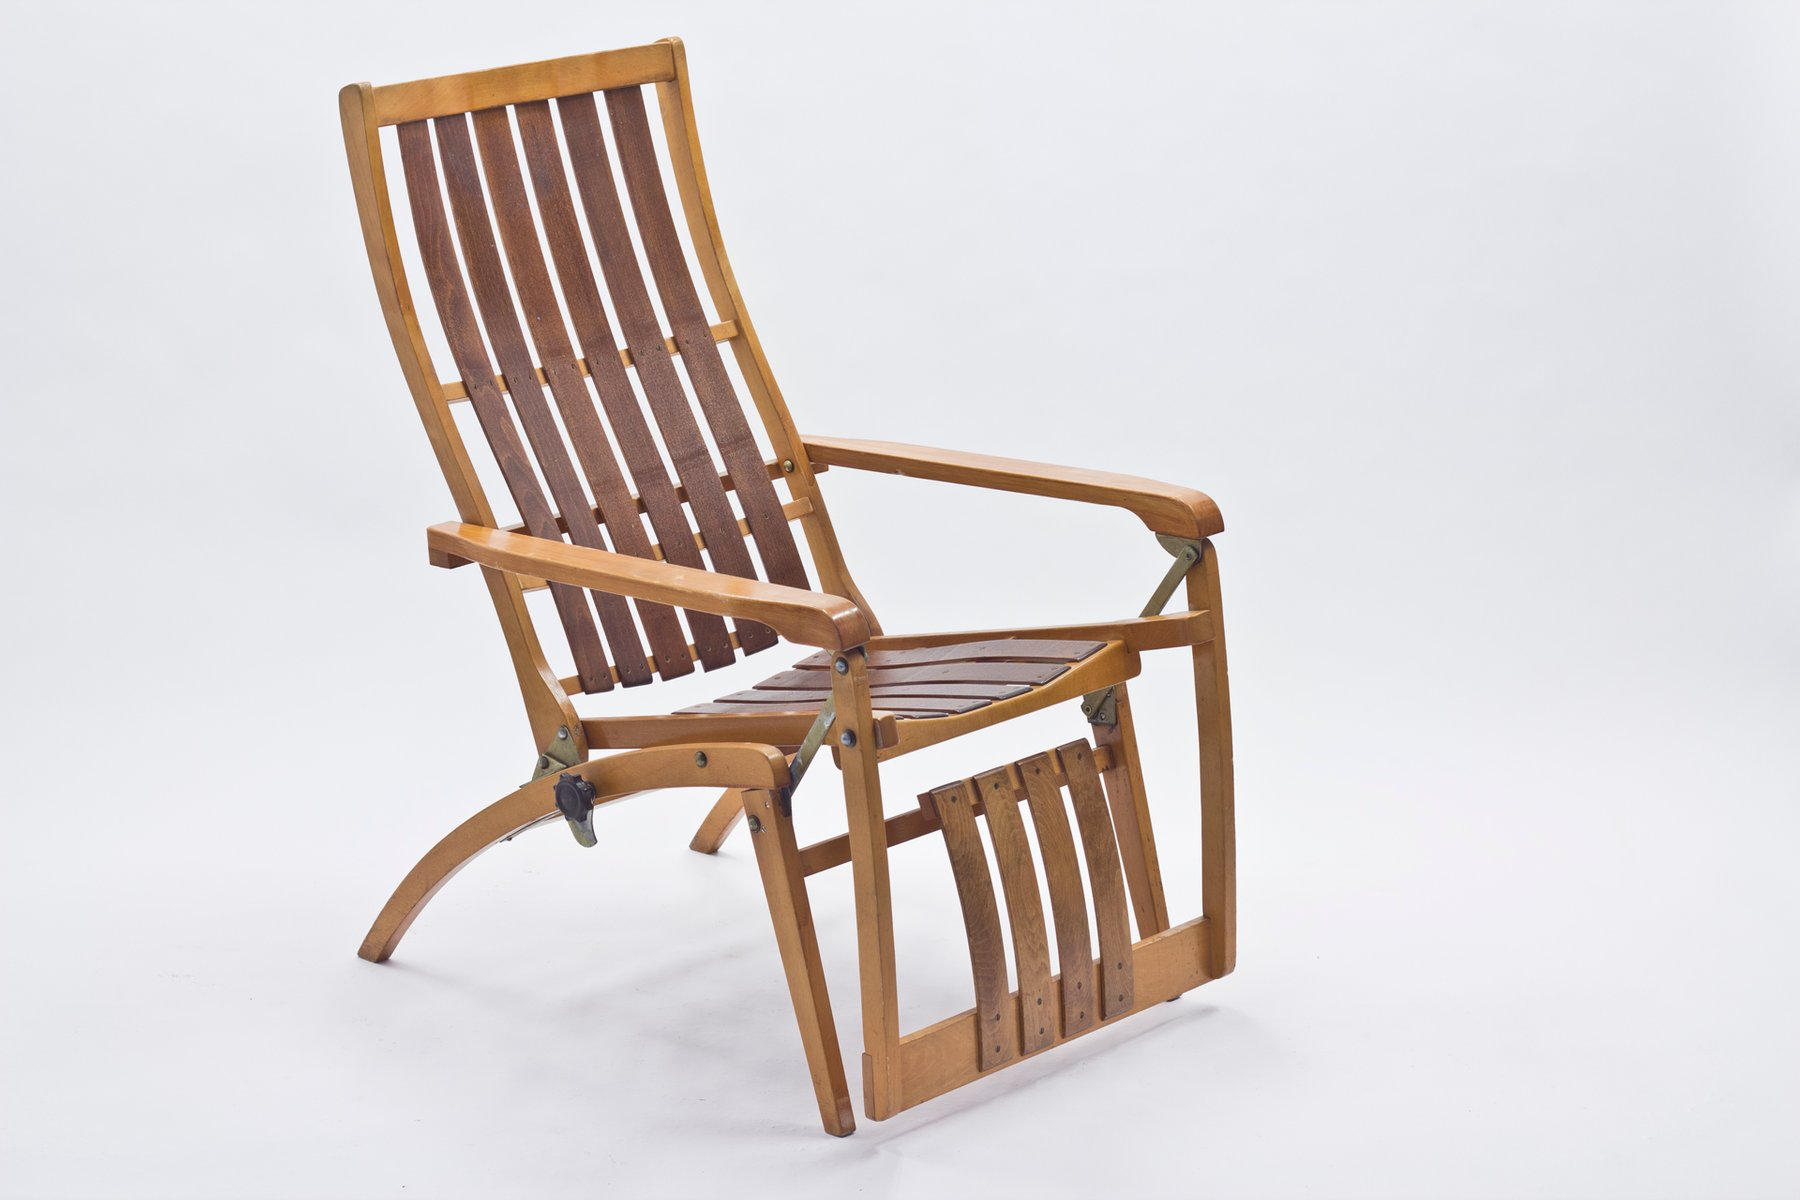 German Siesta Medizinal Folding Chair by Hans & Wassili Luckhardt